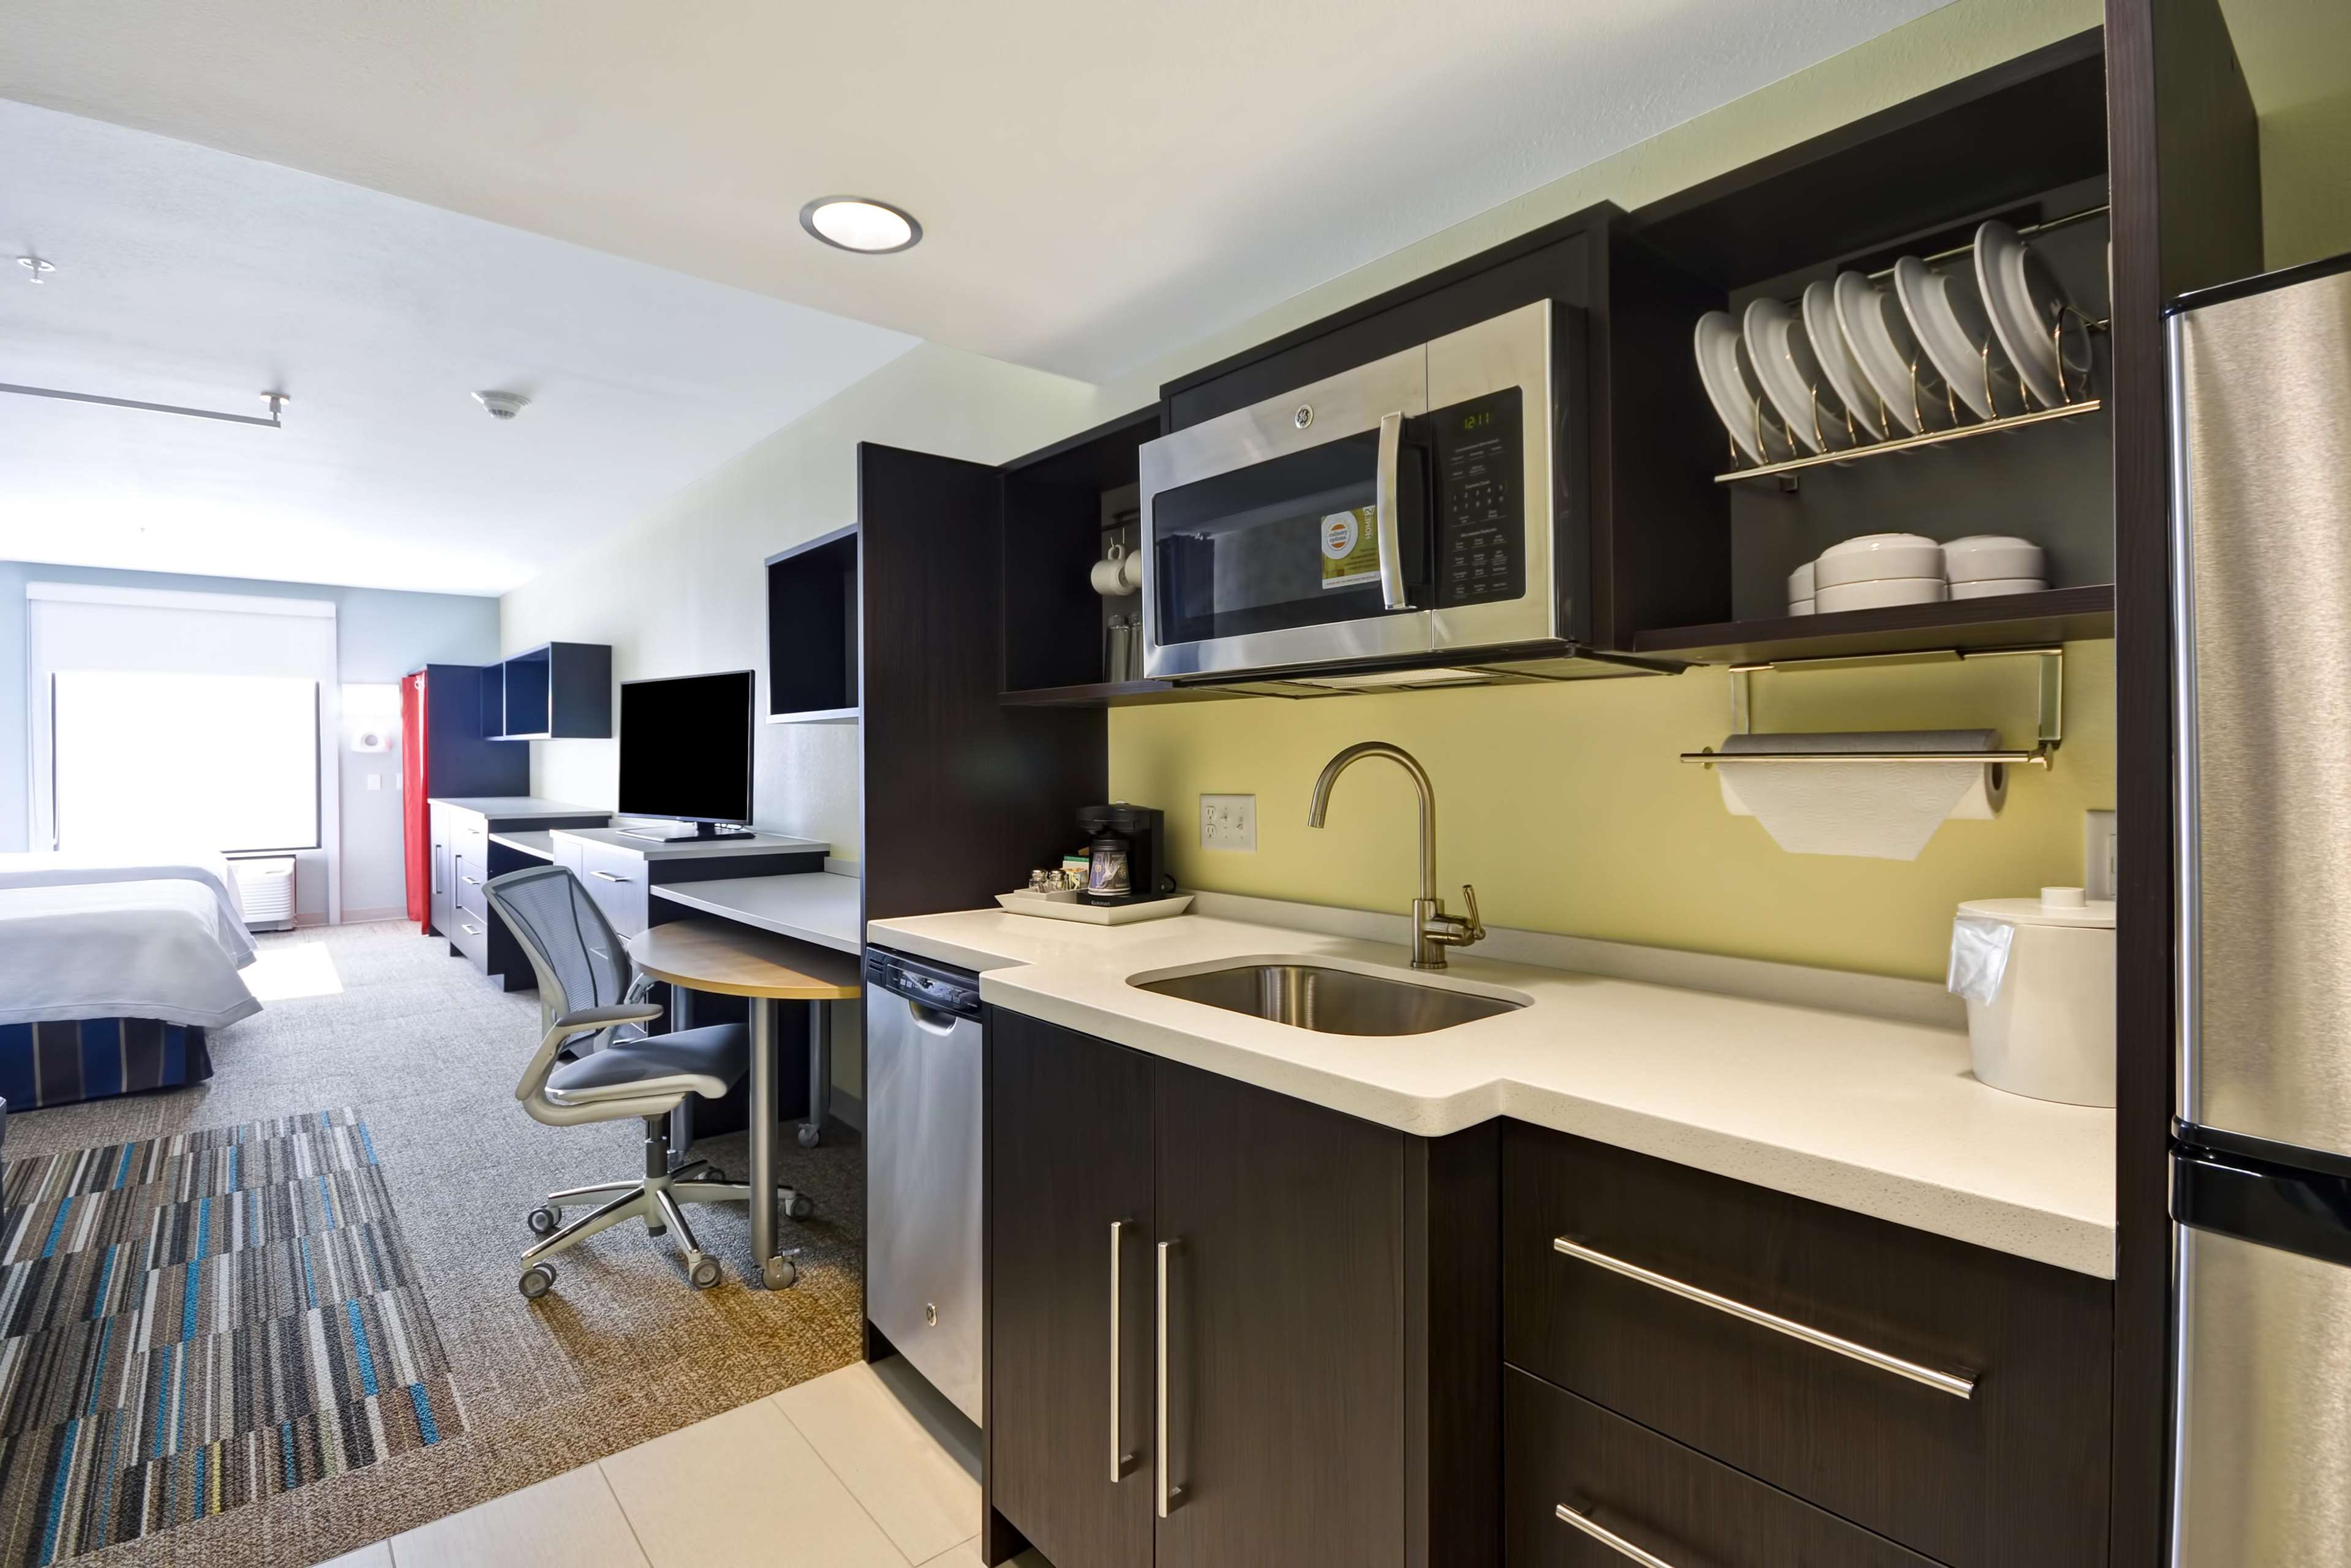 Home2 Suites by Hilton Oswego image 24